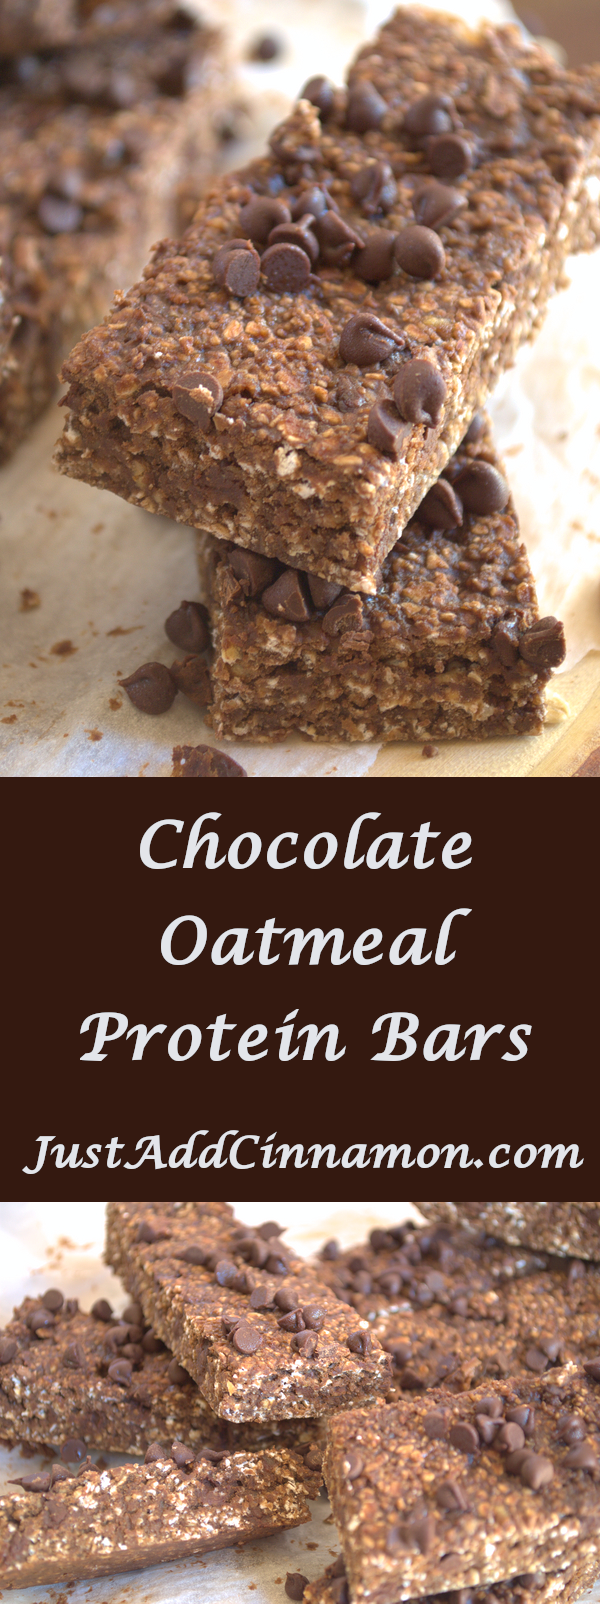 Chocolate Oatmeal Protein Bars